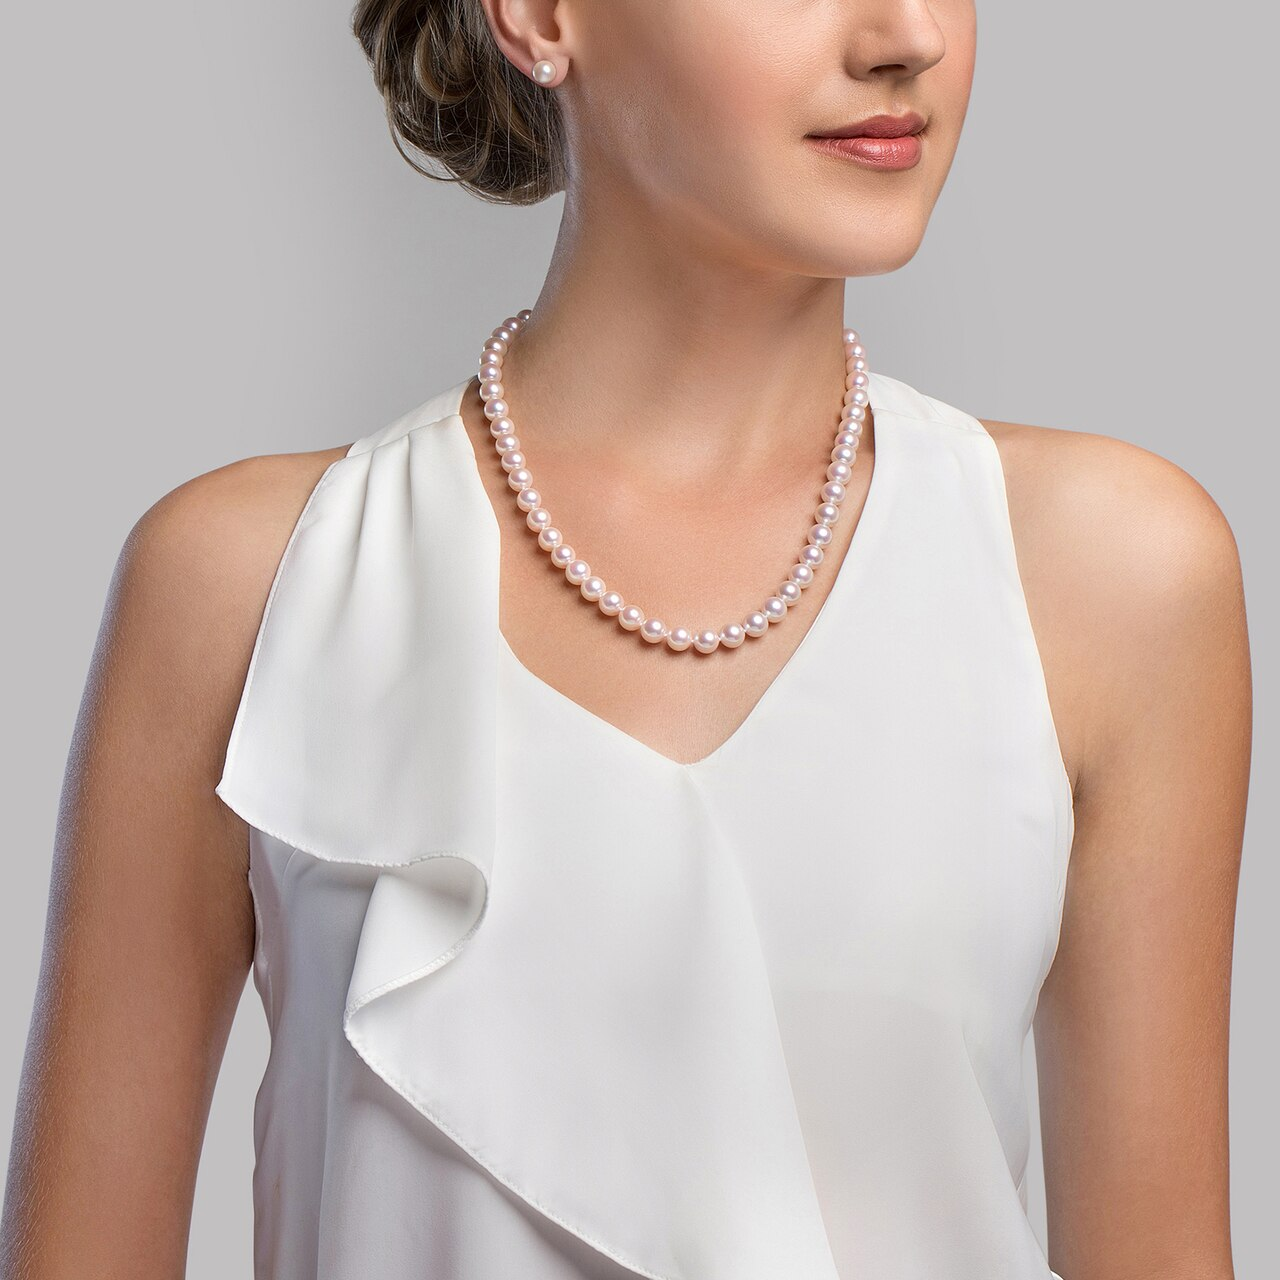 This elegant necklace features 9.0-9.5mm Hanadama Akoya pearls, handpicked for their luminous luster